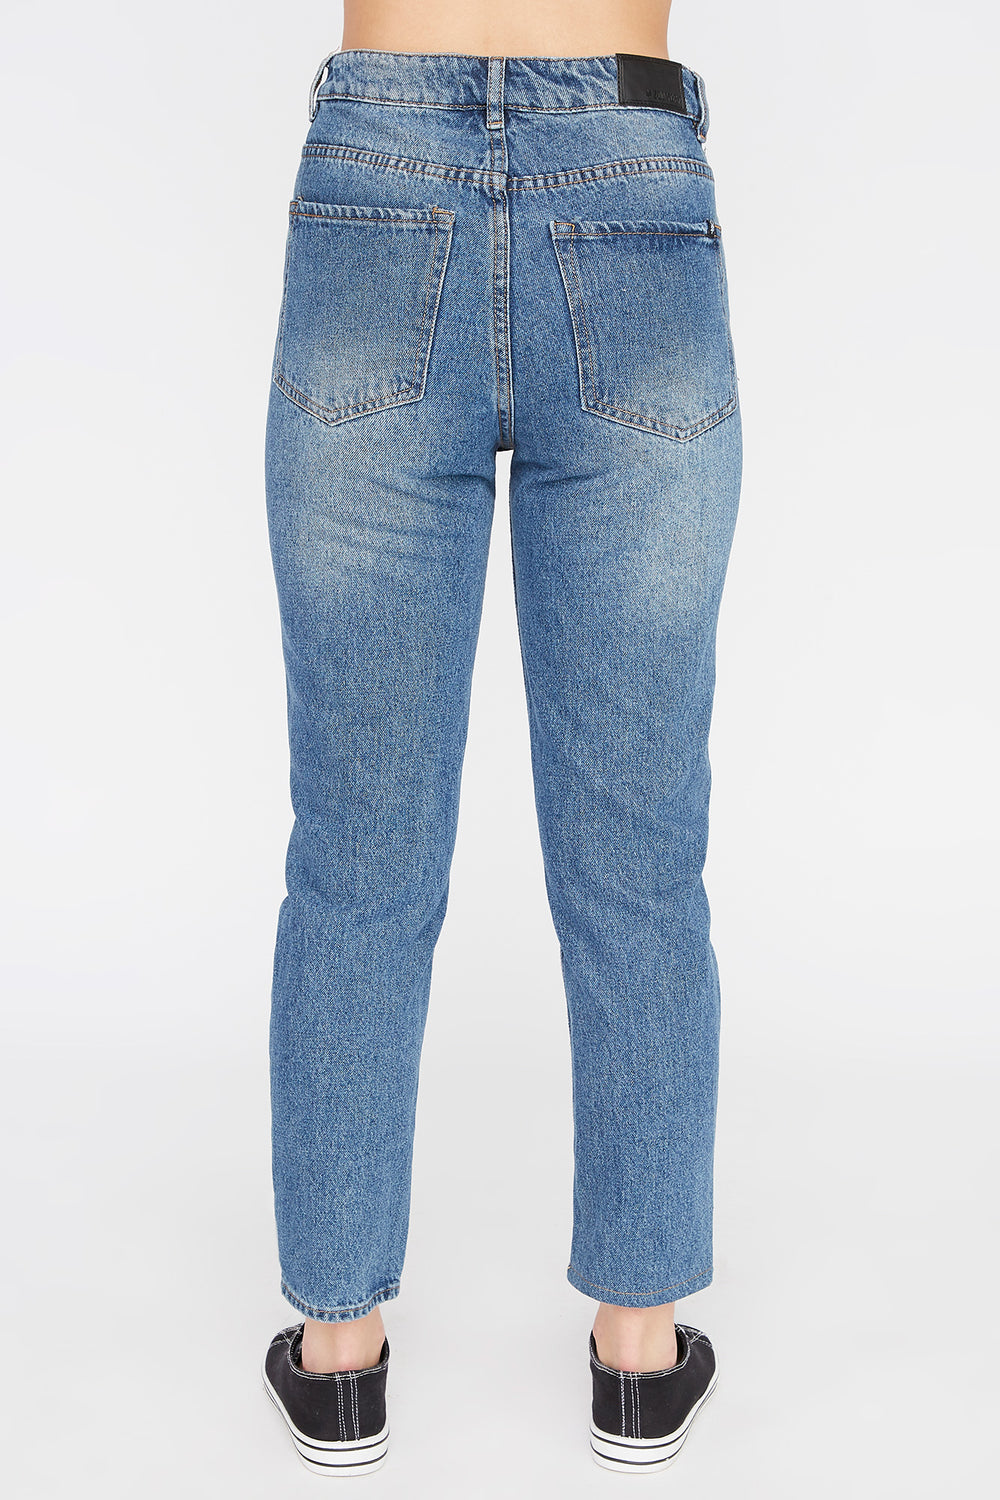 Jean D'Aspect Usé Style Mom Zoo York Femme Bleu denim